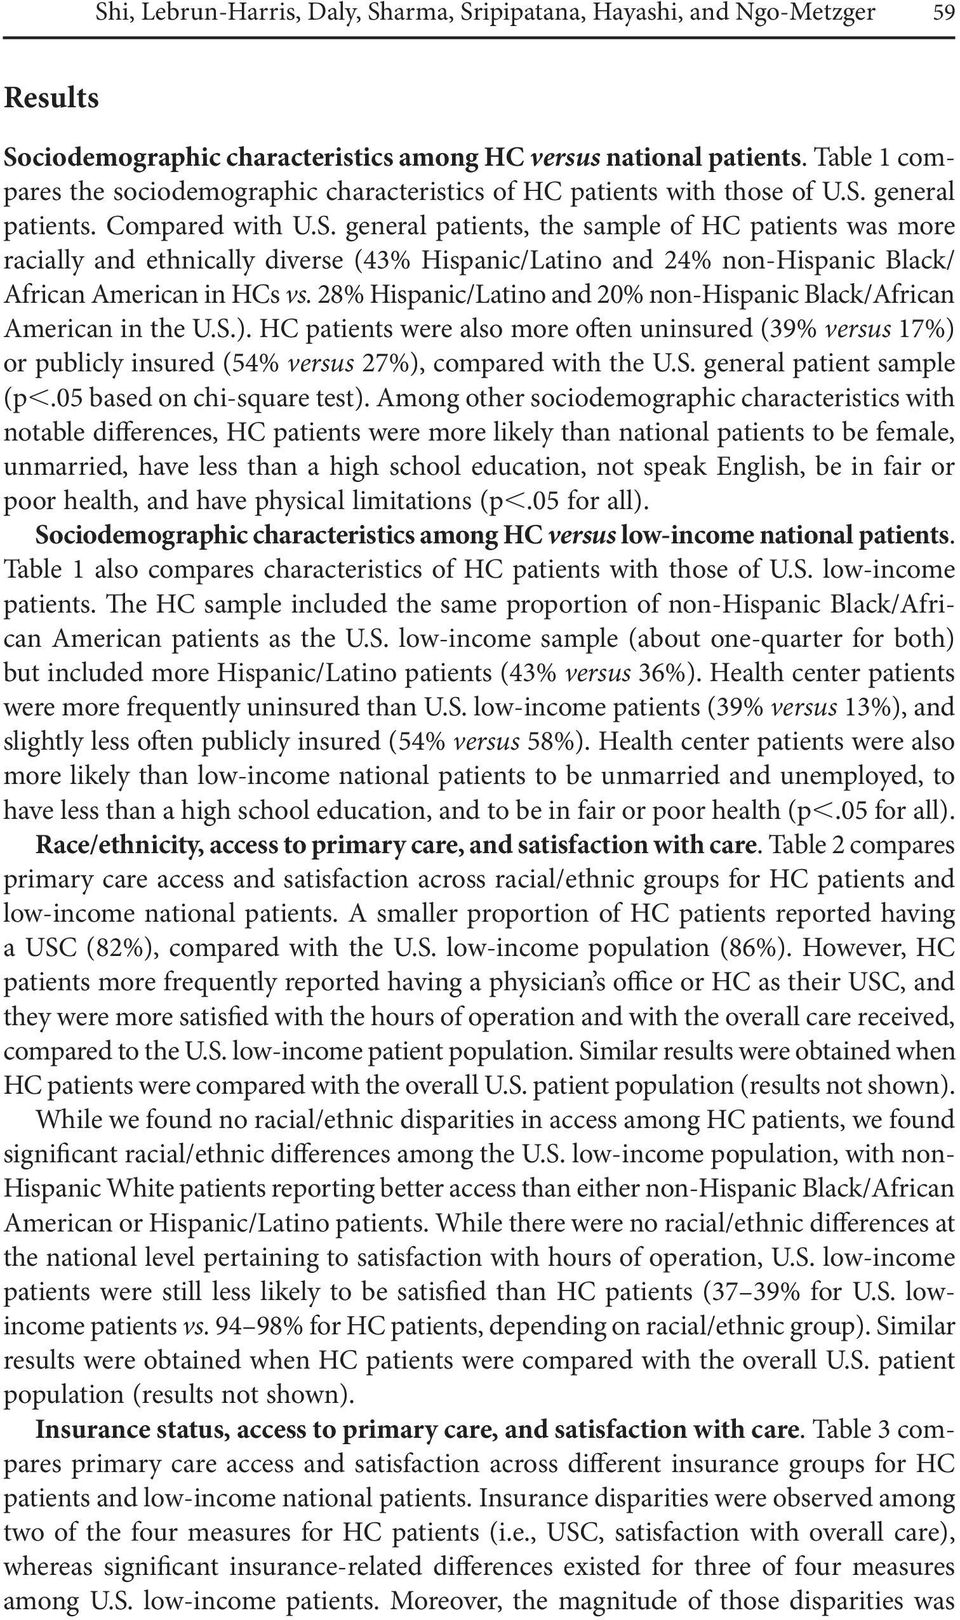 general patients. Compared with U.S. general patients, the sample of HC patients was more racially and ethnically diverse (43% Hispanic/Latino and 24% non-hispanic Black/ African American in HCs vs.